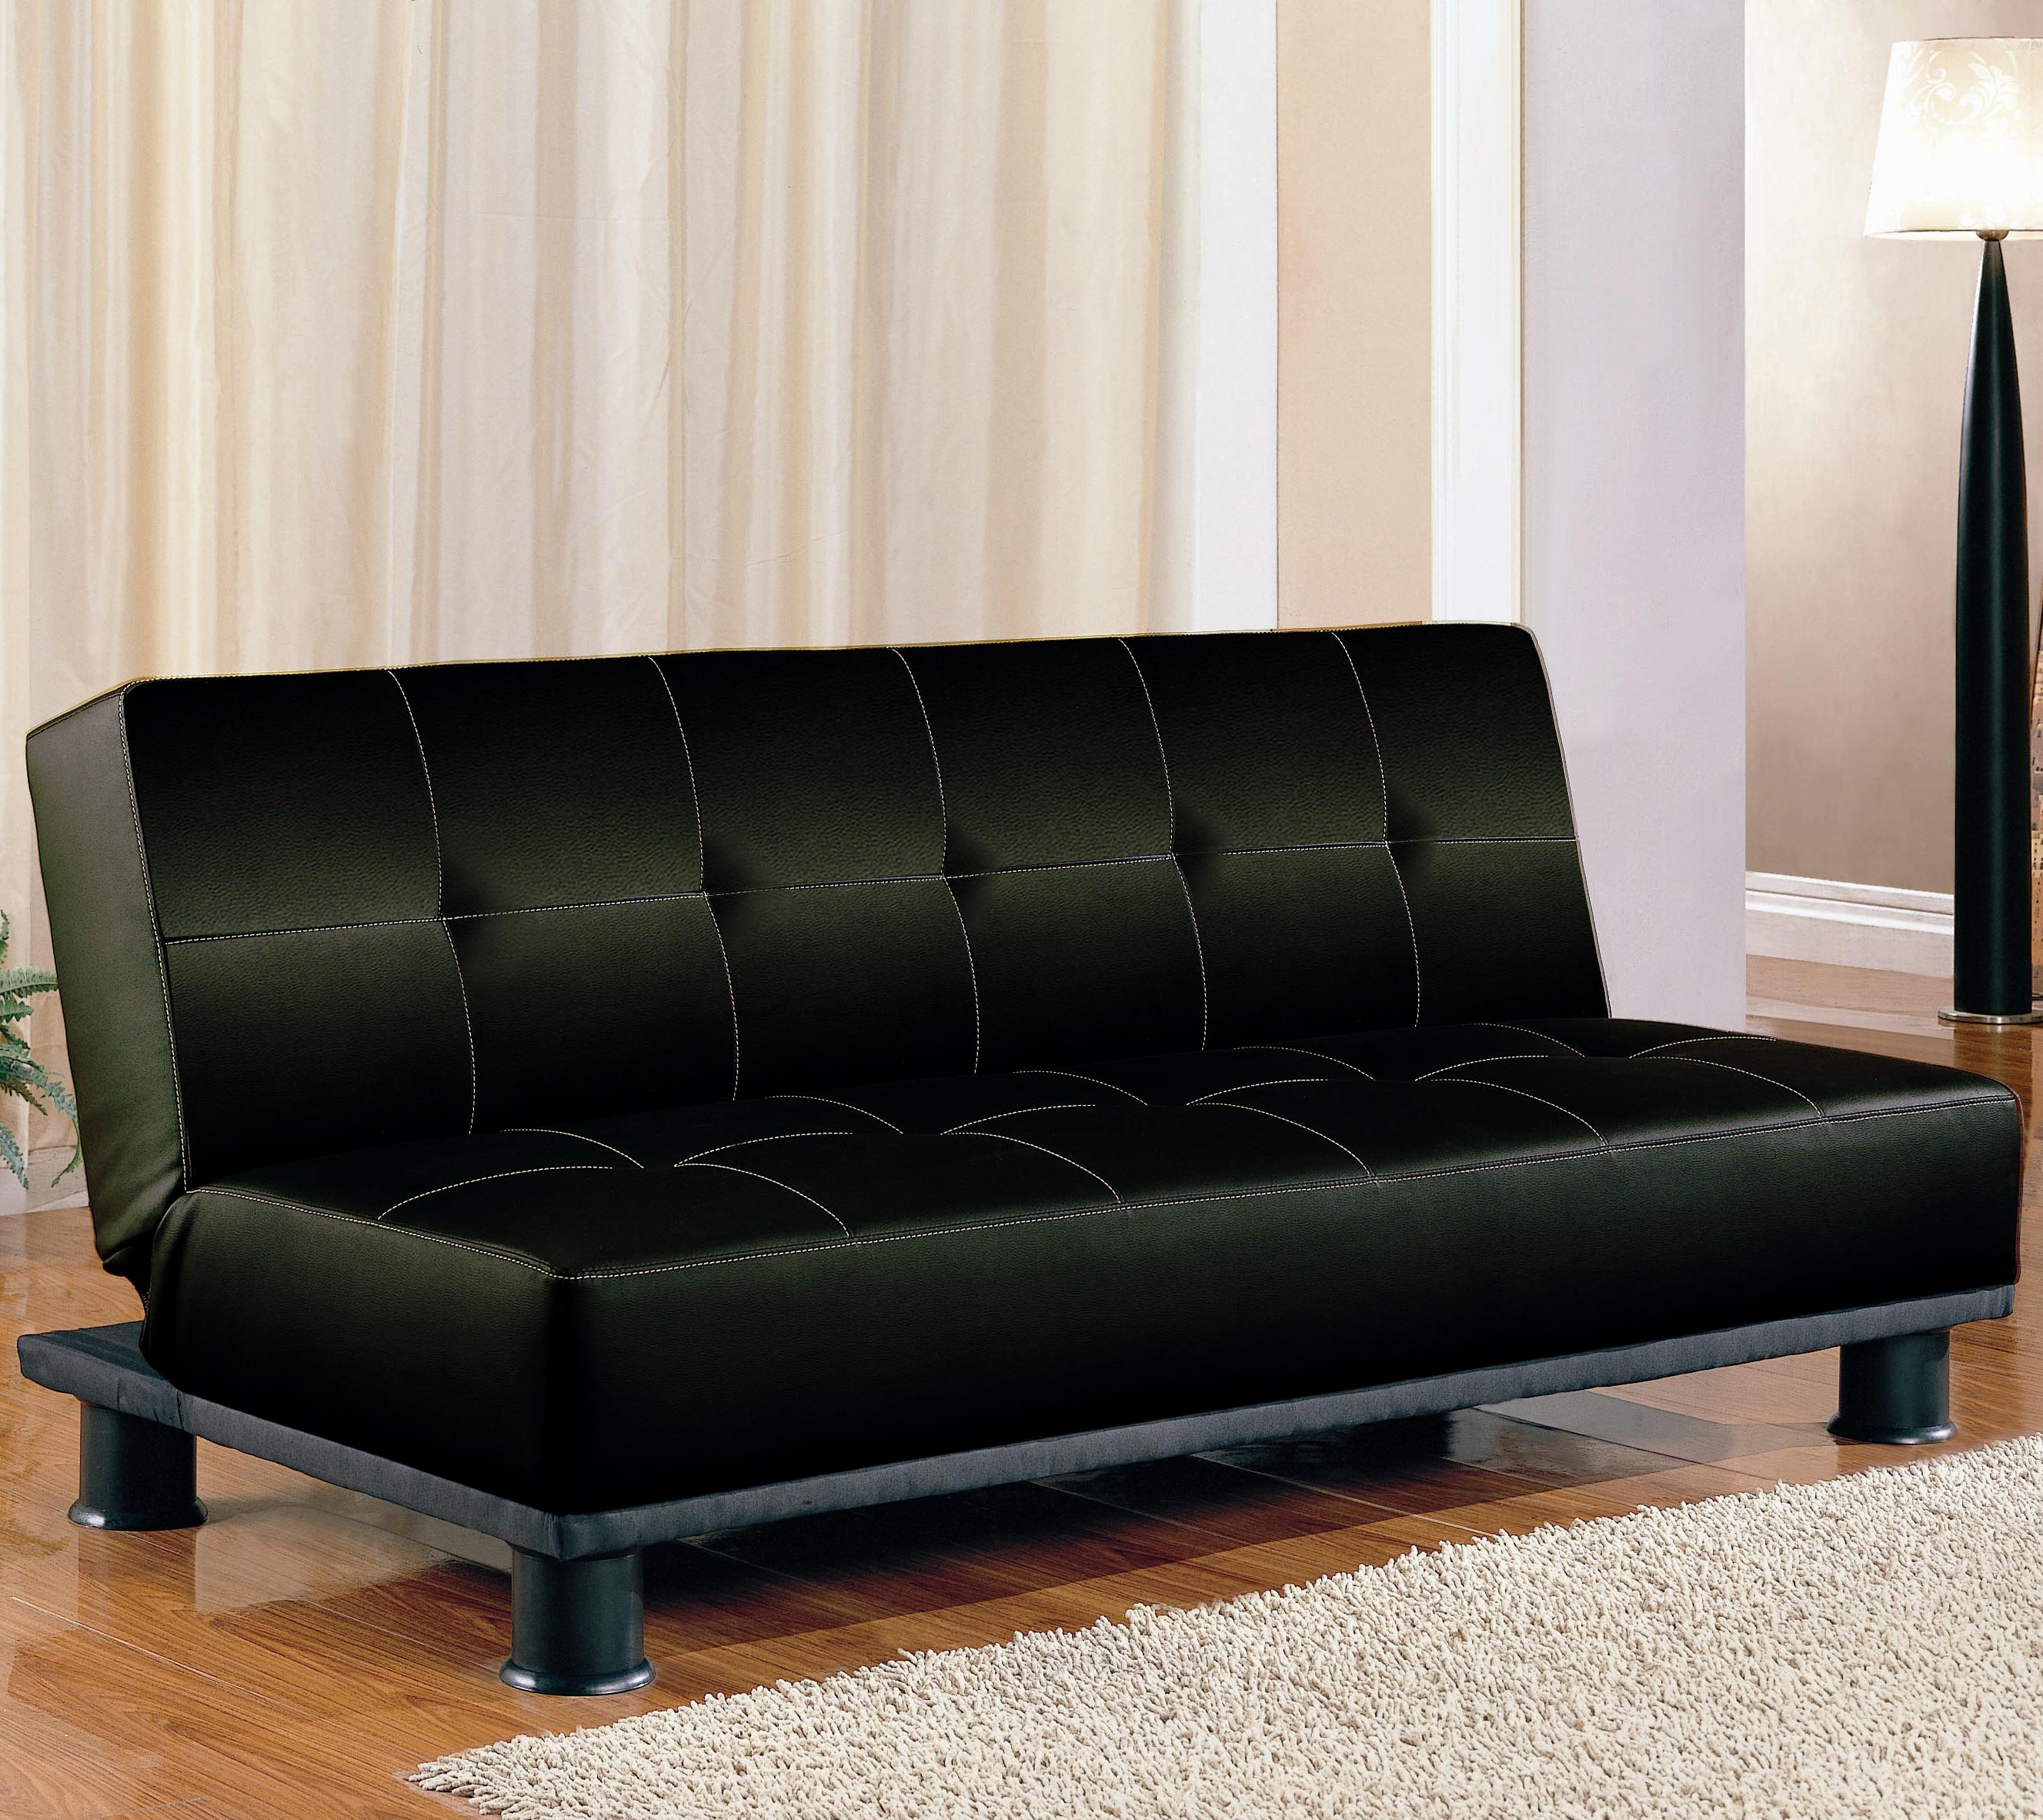 bed beds contemporary styled futon products with and coaster futons item number sleeper sofa